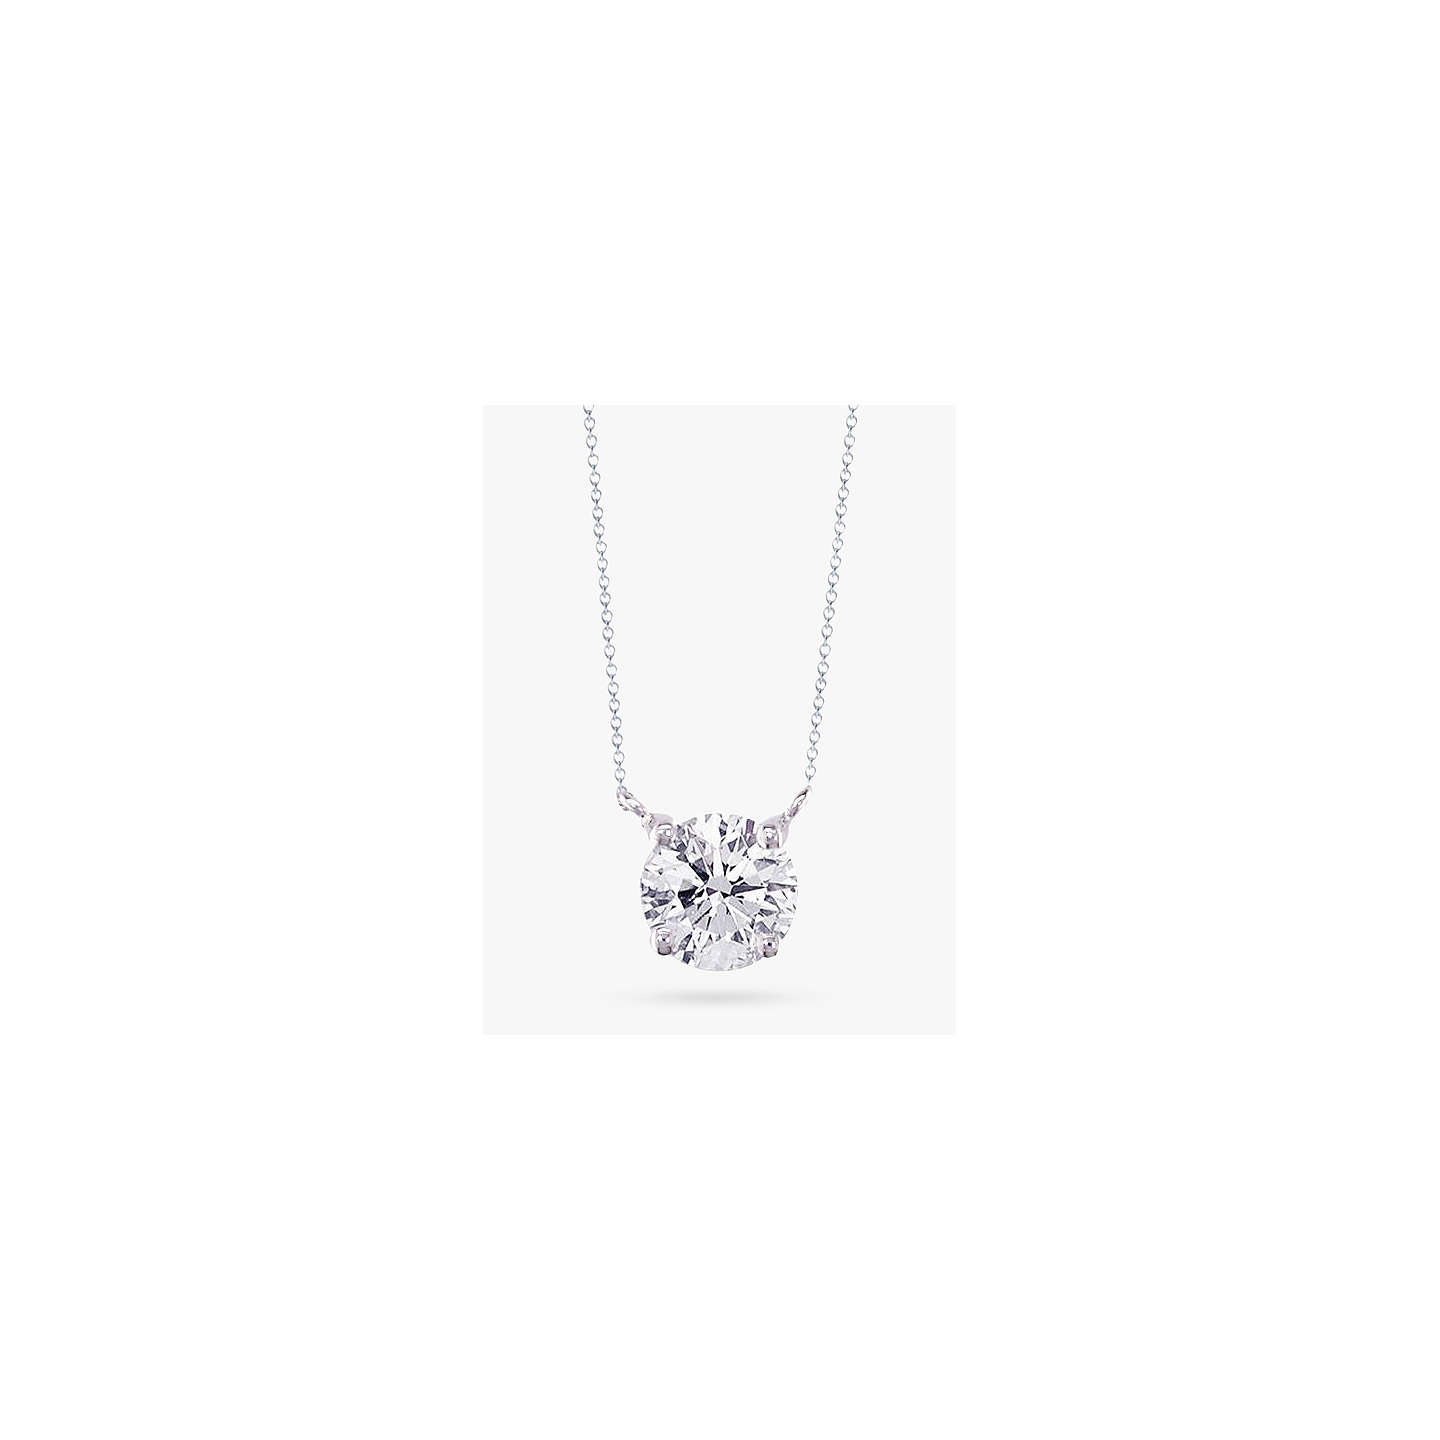 necklace wid shopping tiffany constrain item solitare ed platinum hei fit fmt id in solitaire m pendant diamond co